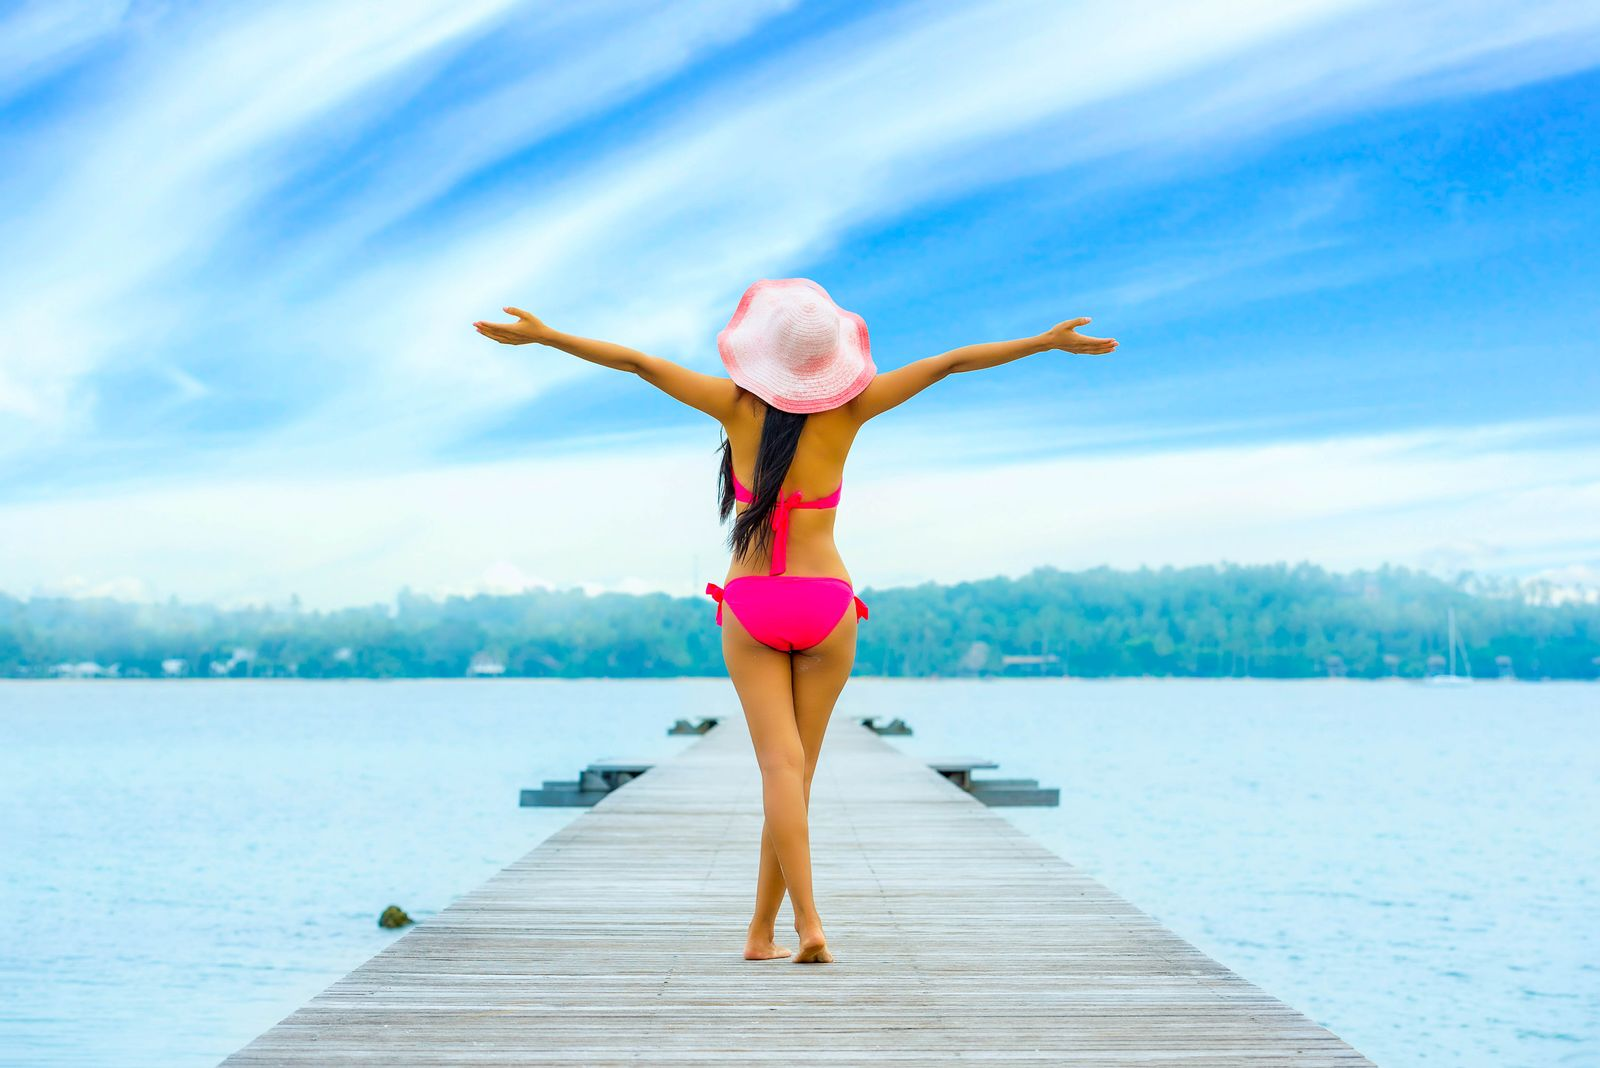 Woman on a bikini standing on a pier with arms outstretched above her head, her back turned to the camera